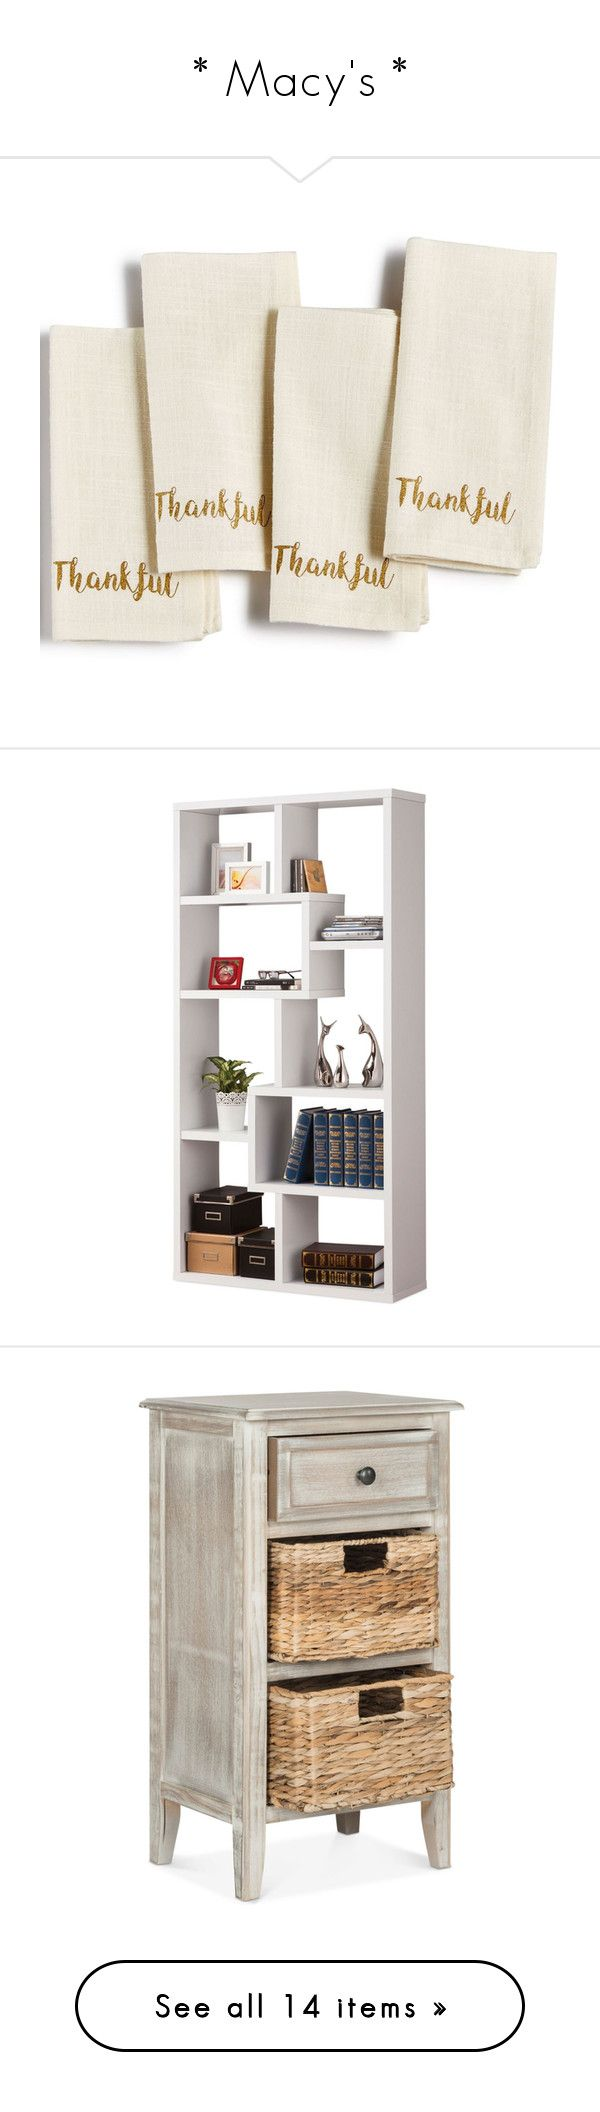 """""""* Macy's *"""" by mysfytdesigns ❤ liked on Polyvore featuring home, kitchen & dining, table linens, natural, homewear, furniture, storage & shelves, bookcases, white and book-shelf"""